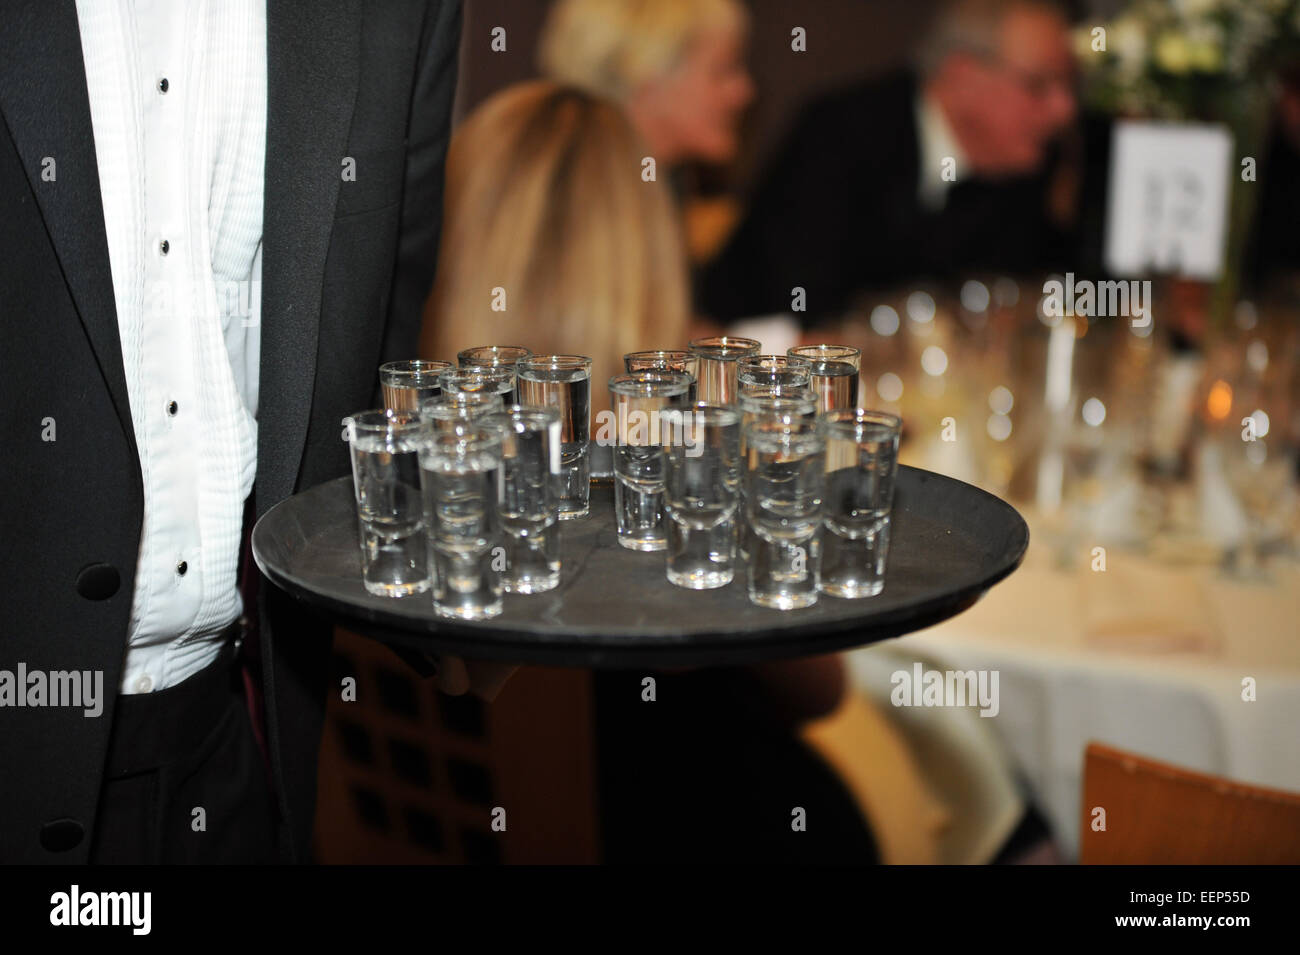 Drinking Culture in the UK,  vodka shots, party drinks. - Stock Image